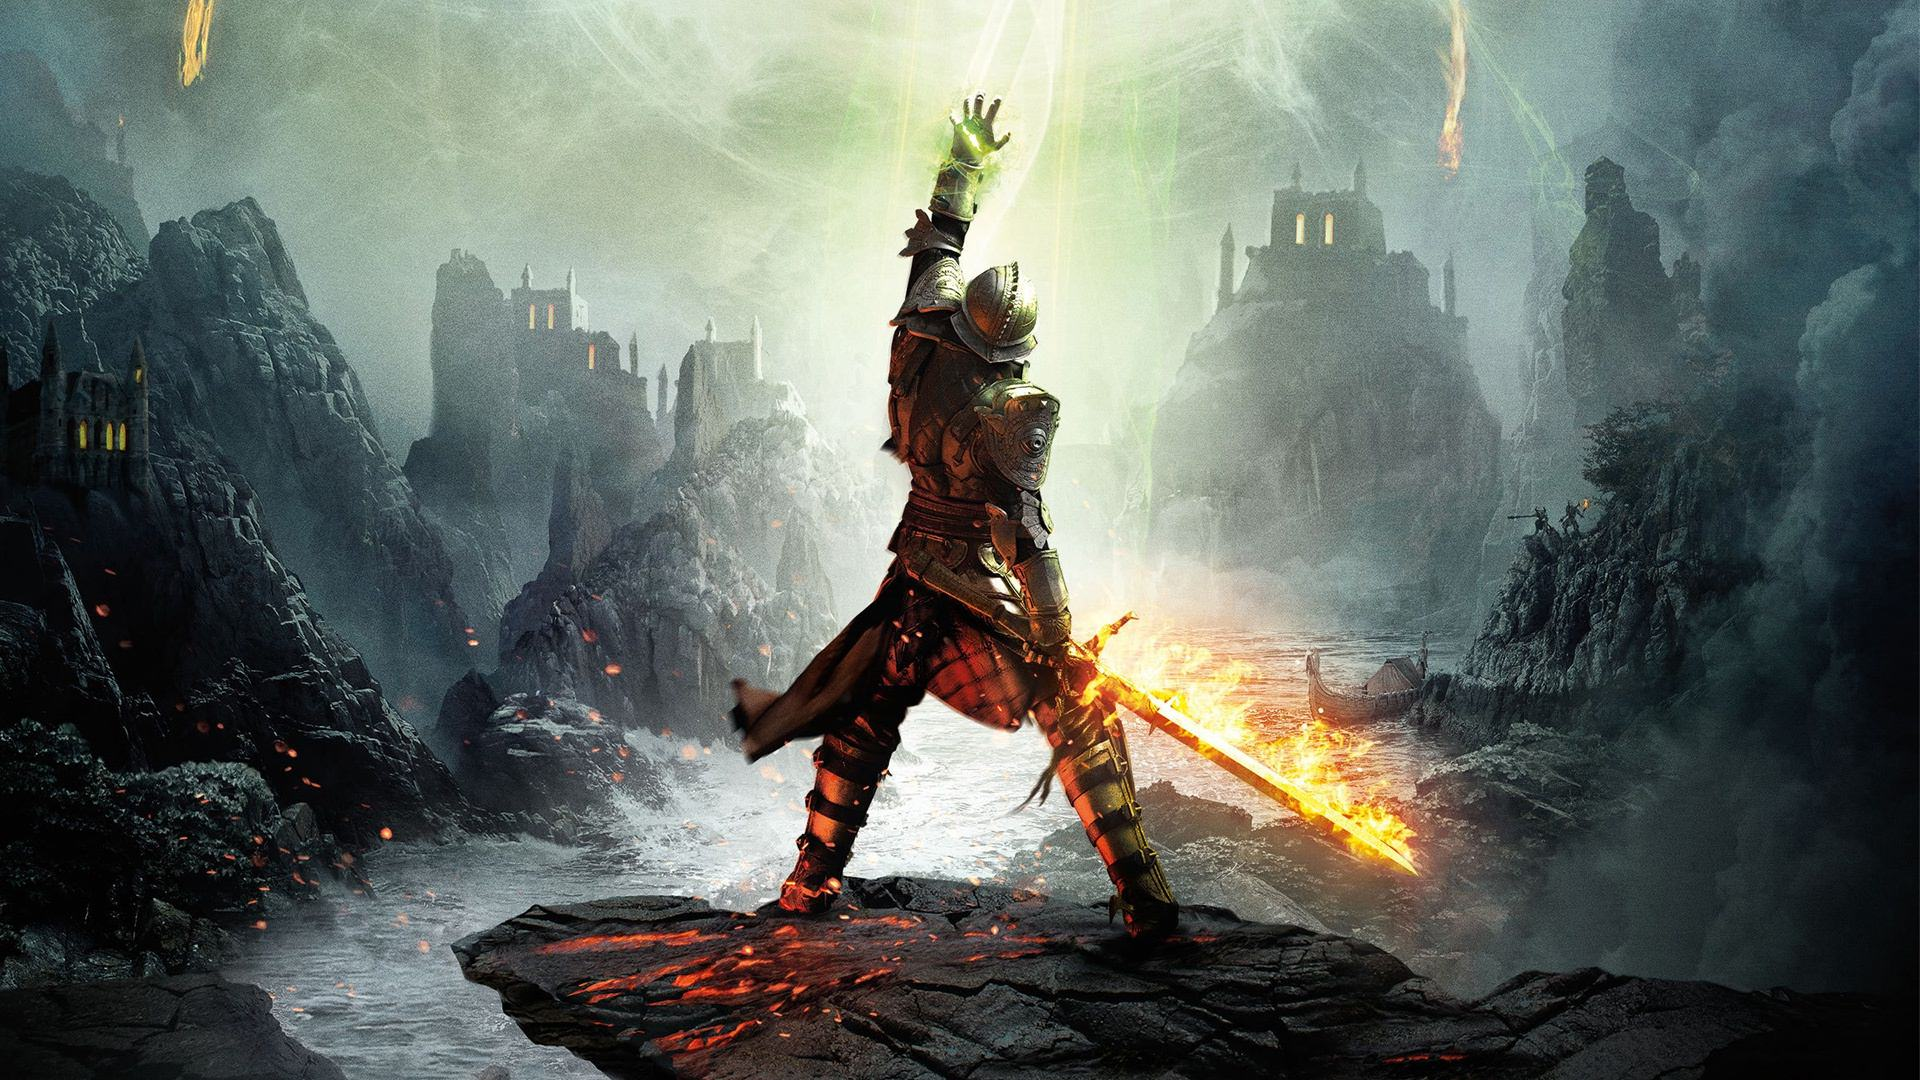 daI cover Bioware Gauging Interest For A Dragon Age Tactics Game